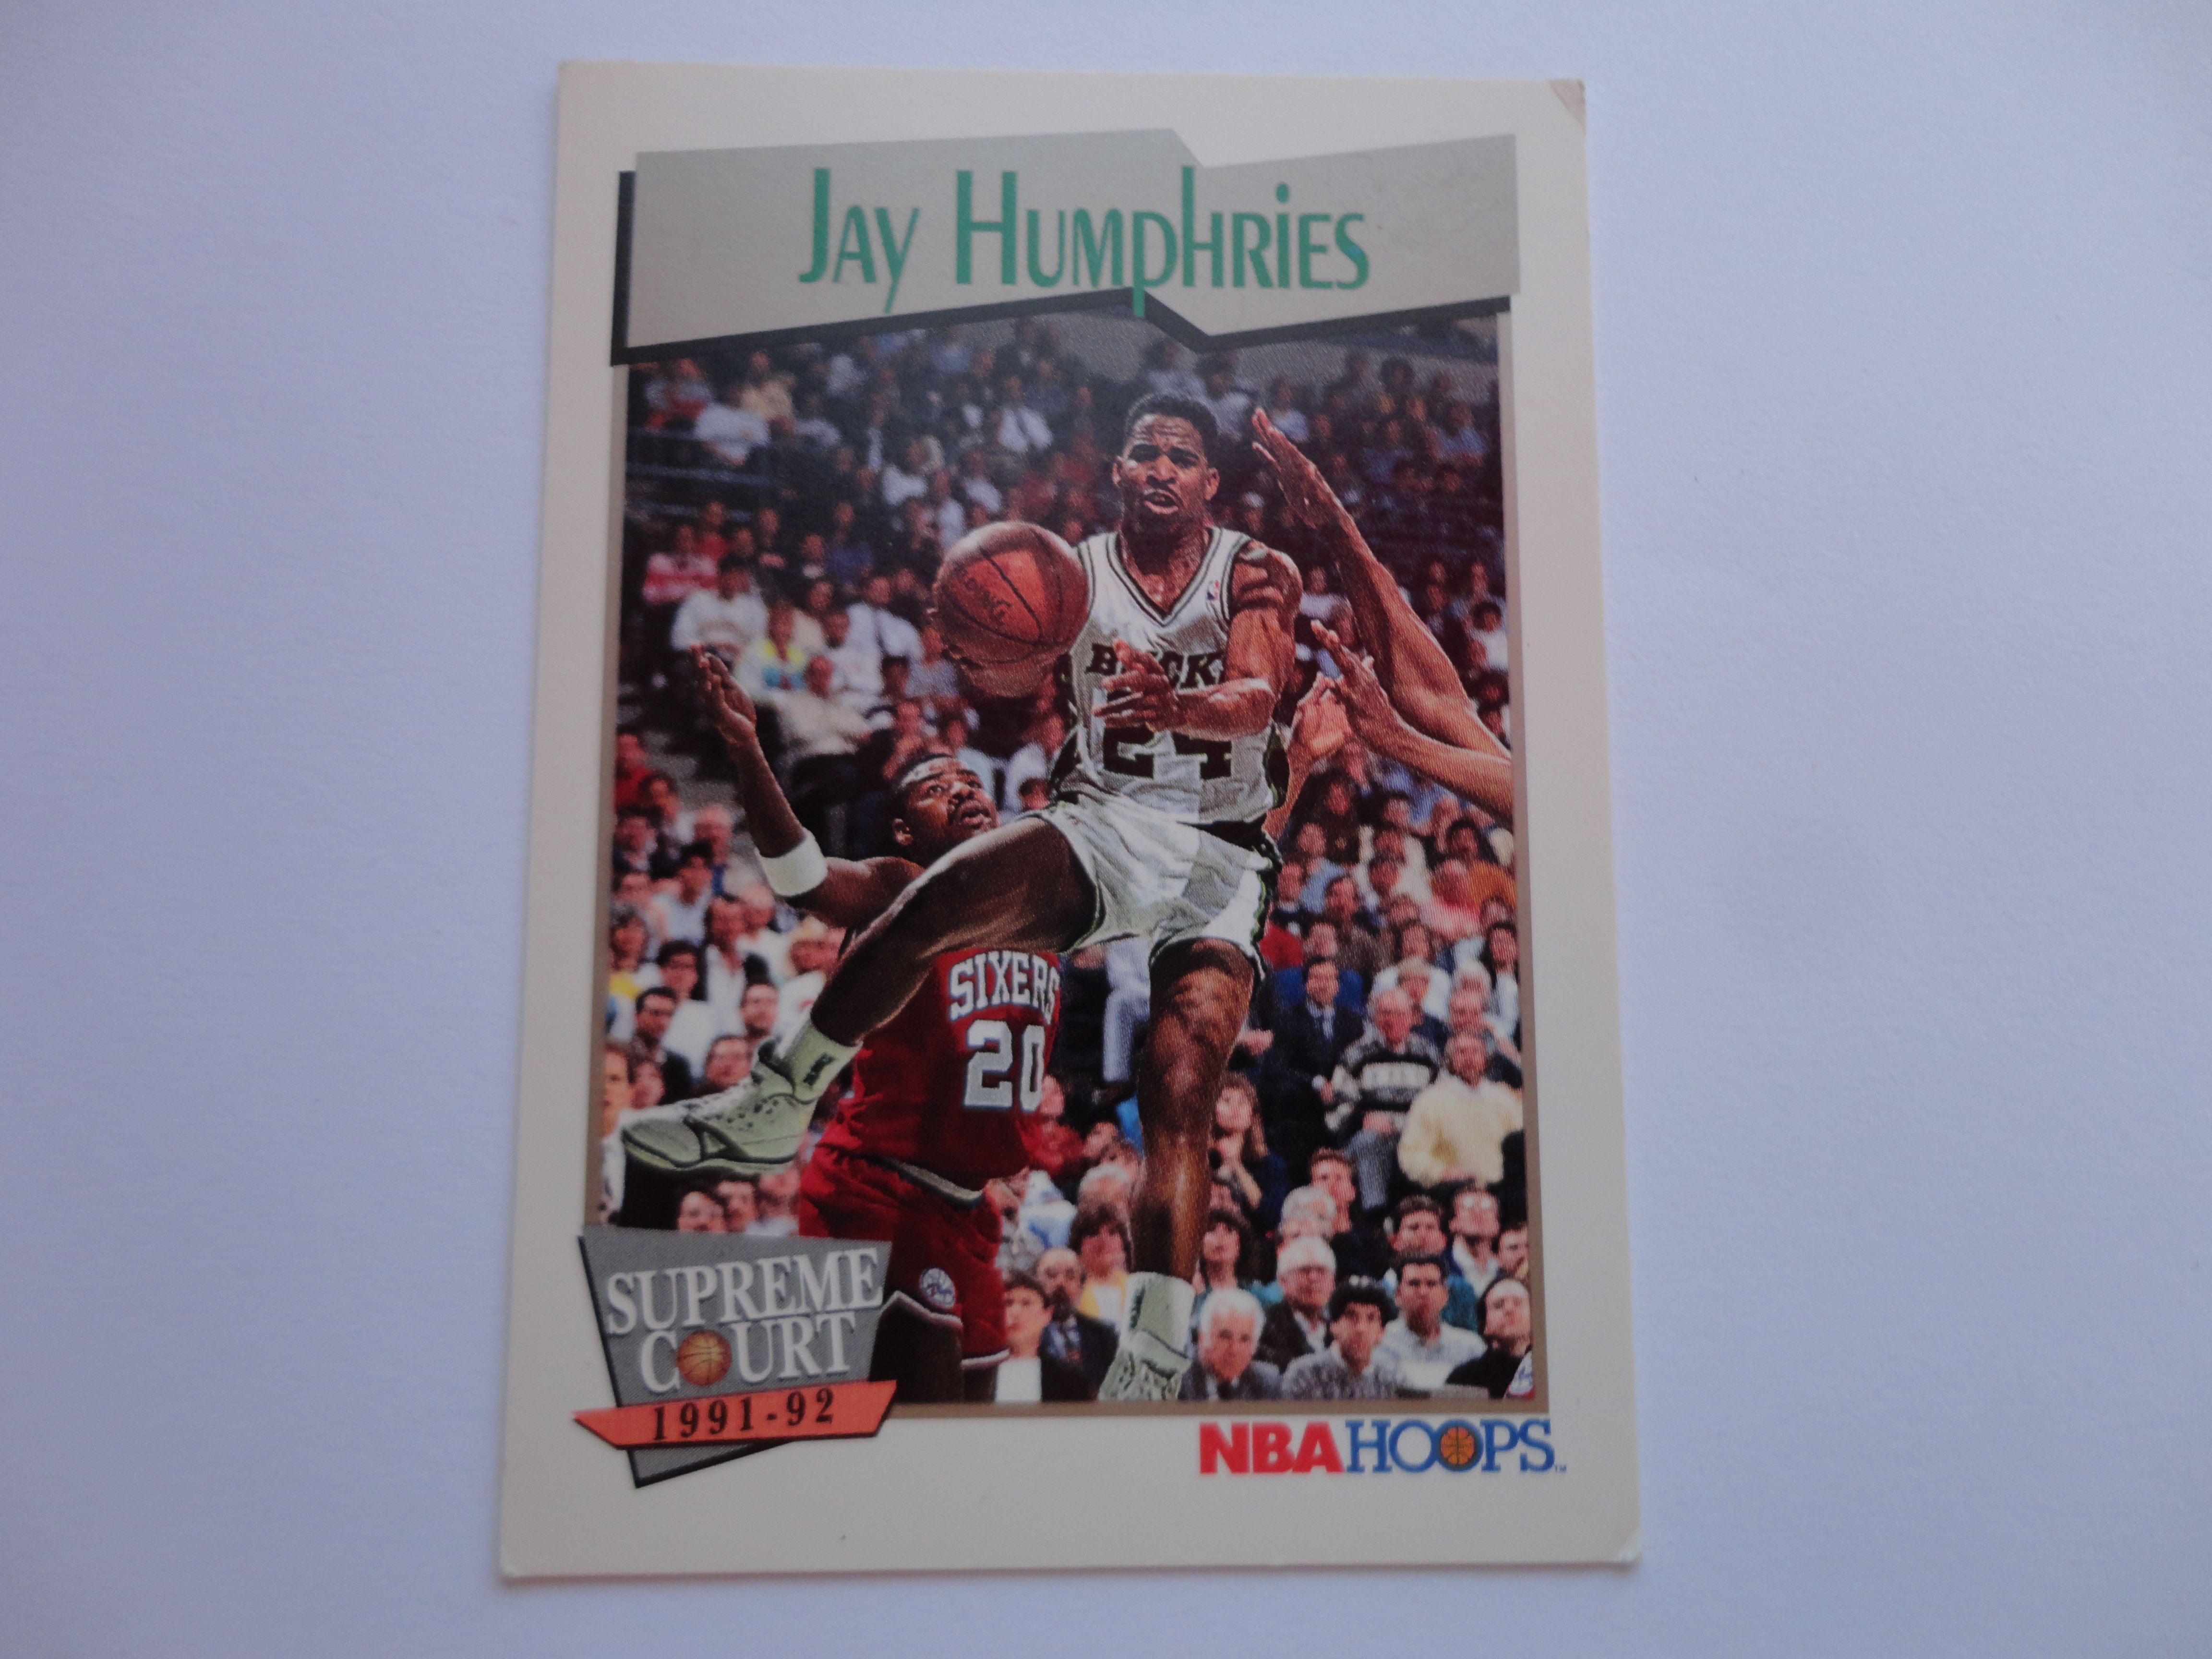 Jay Humphries NBA Hoops Supreme Court 1991 92 Basketball